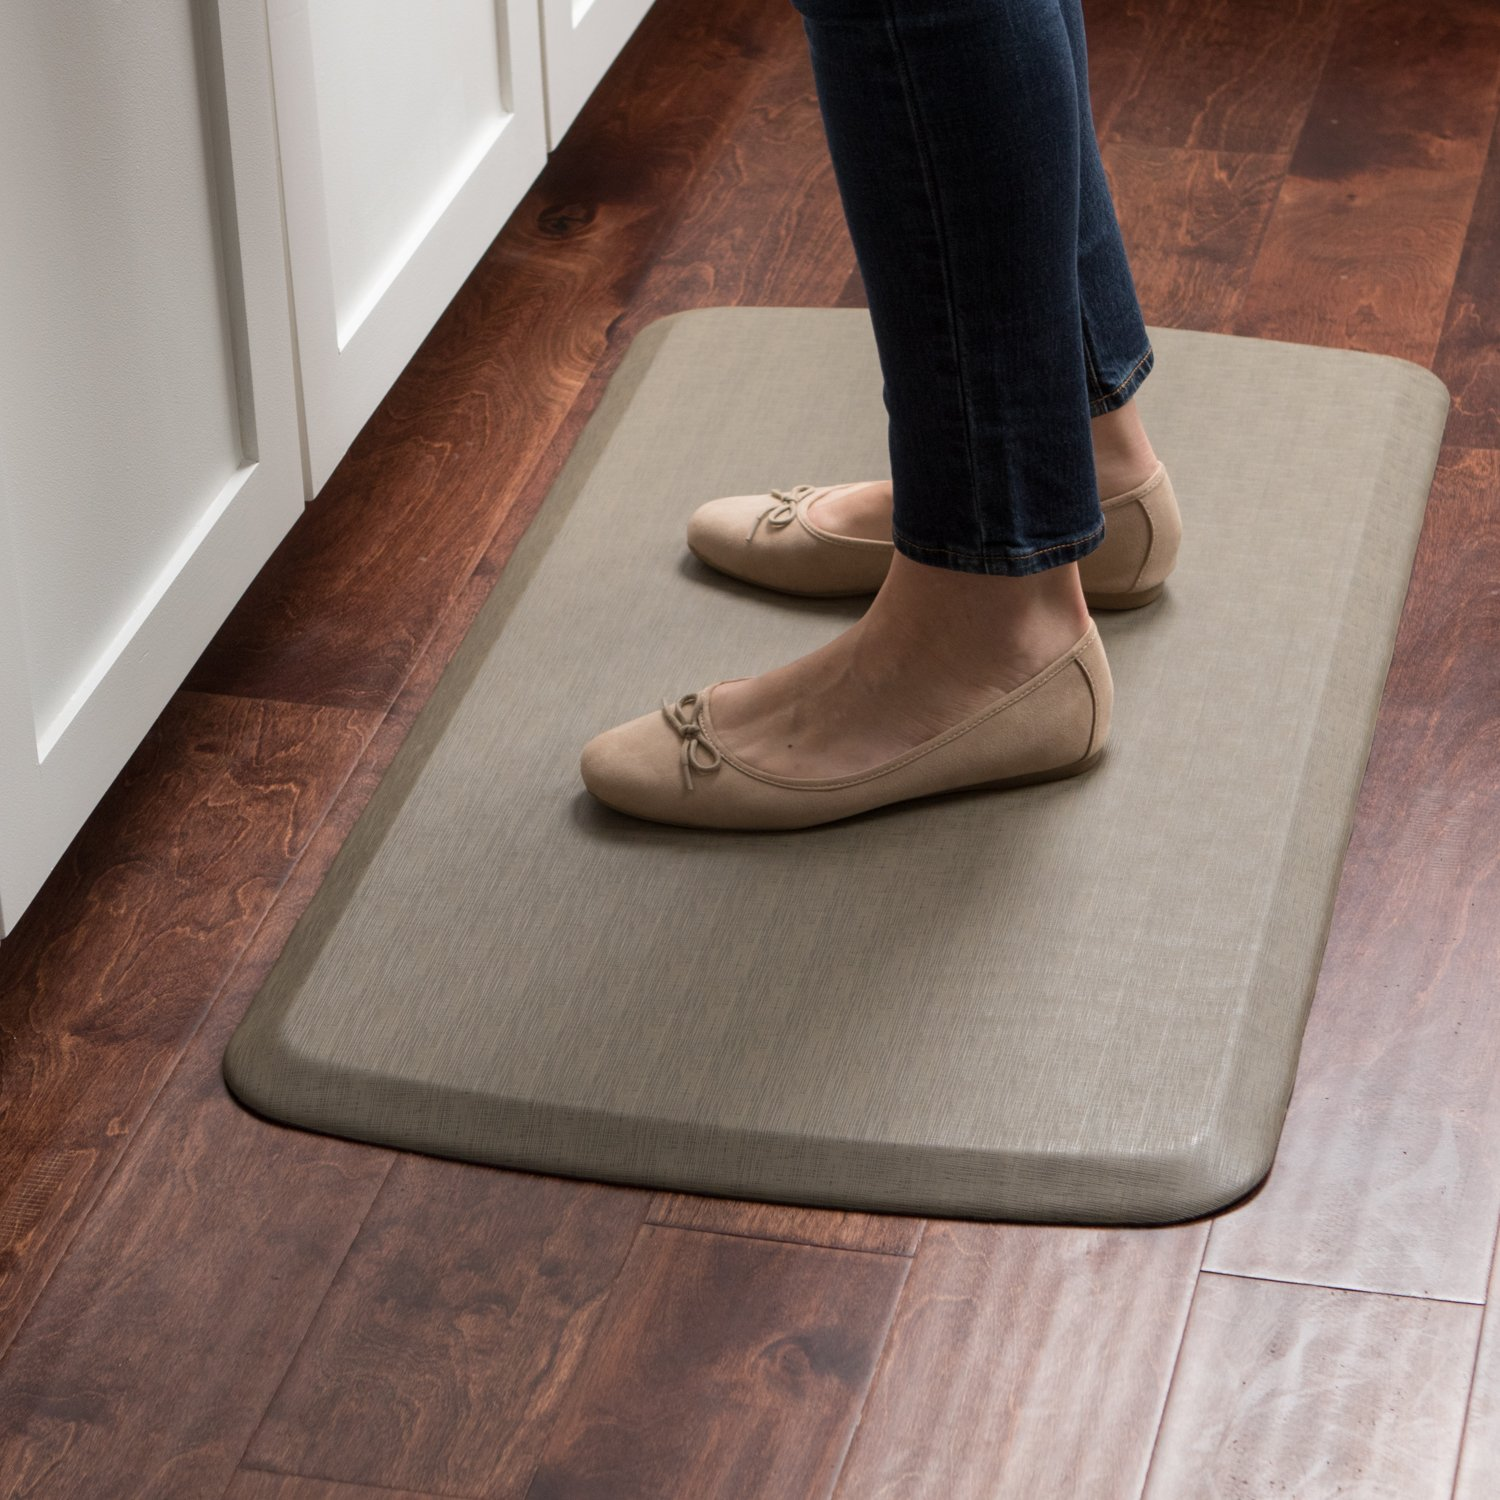 "GelPro Elite Premier Anti-Fatigue Kitchen Comfort Floor Mat, 20x36"", Vintage Leather Sherry Stain Resistant Surface with therapeutic gel and energy-return foam for health & wellness by GelPro (Image #6)"